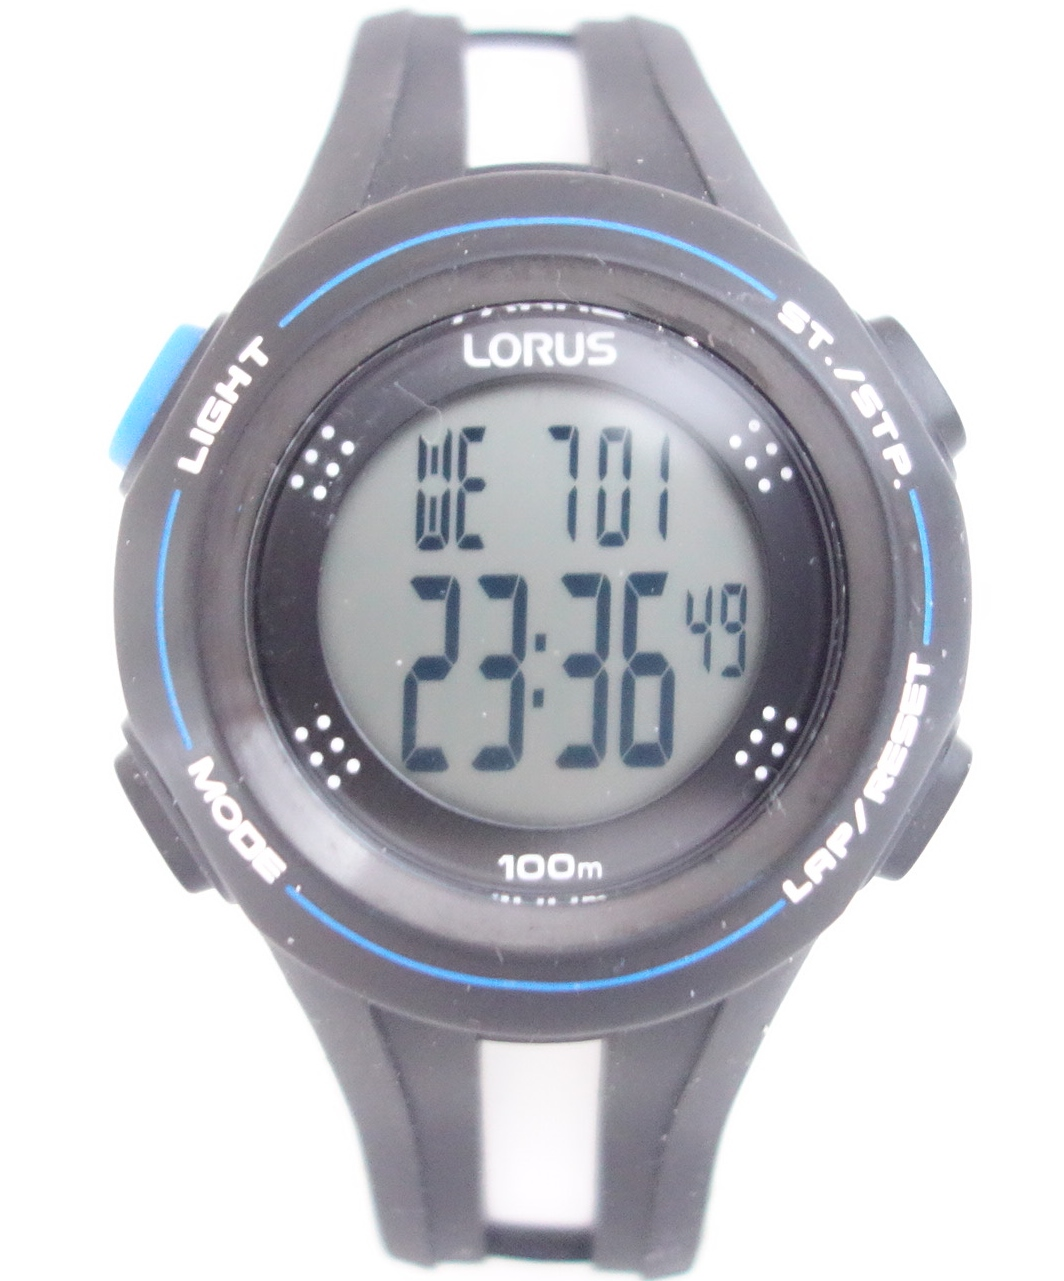 marathon watches ironman timex itm sentinel running new watch black digital sports brand mens